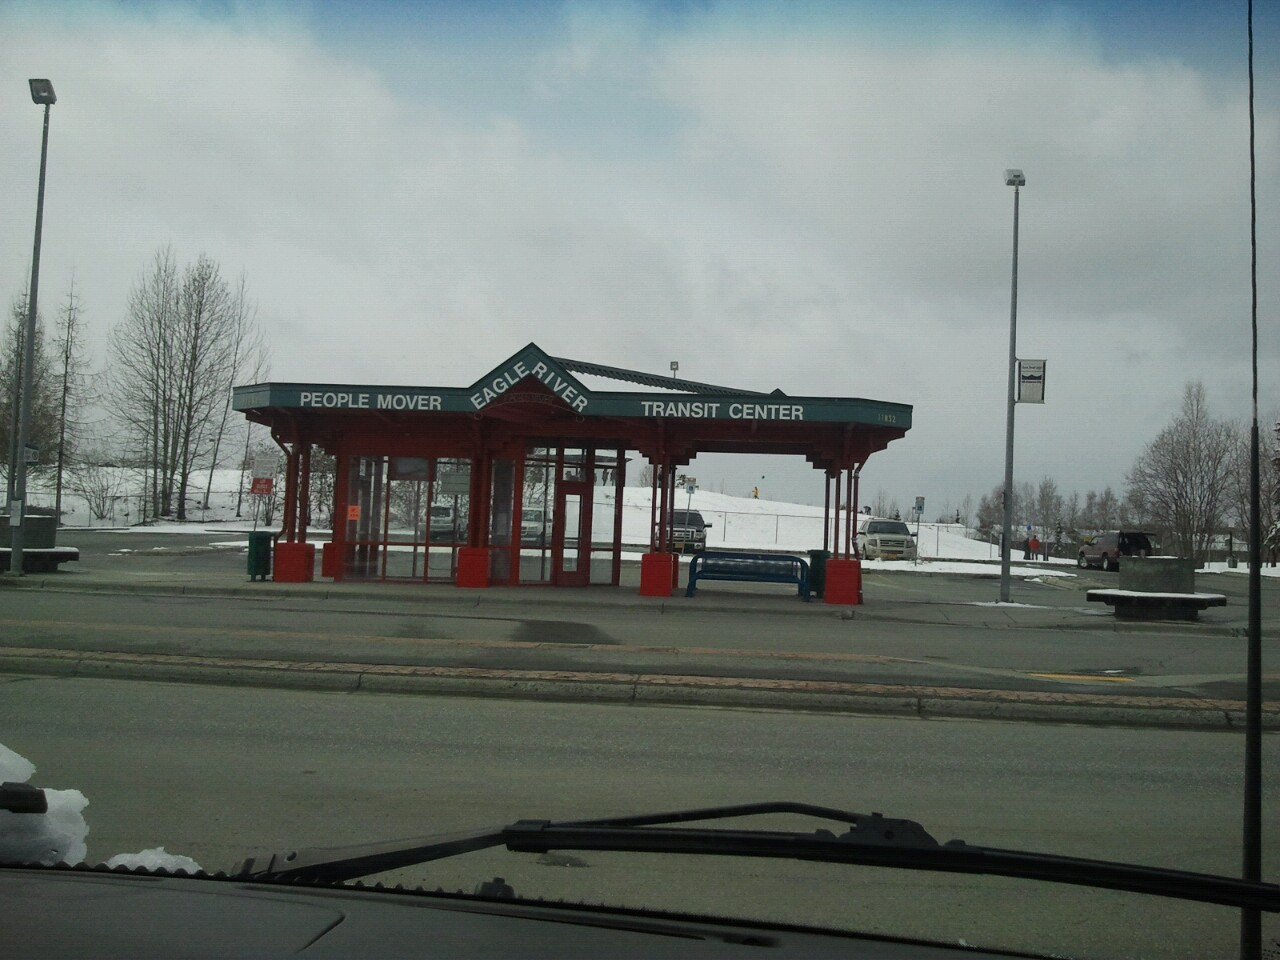 Eagle River town square at 3:42 pm on May 18th, 2013. This is officially the longest snow season on record since we began recording in 1911.